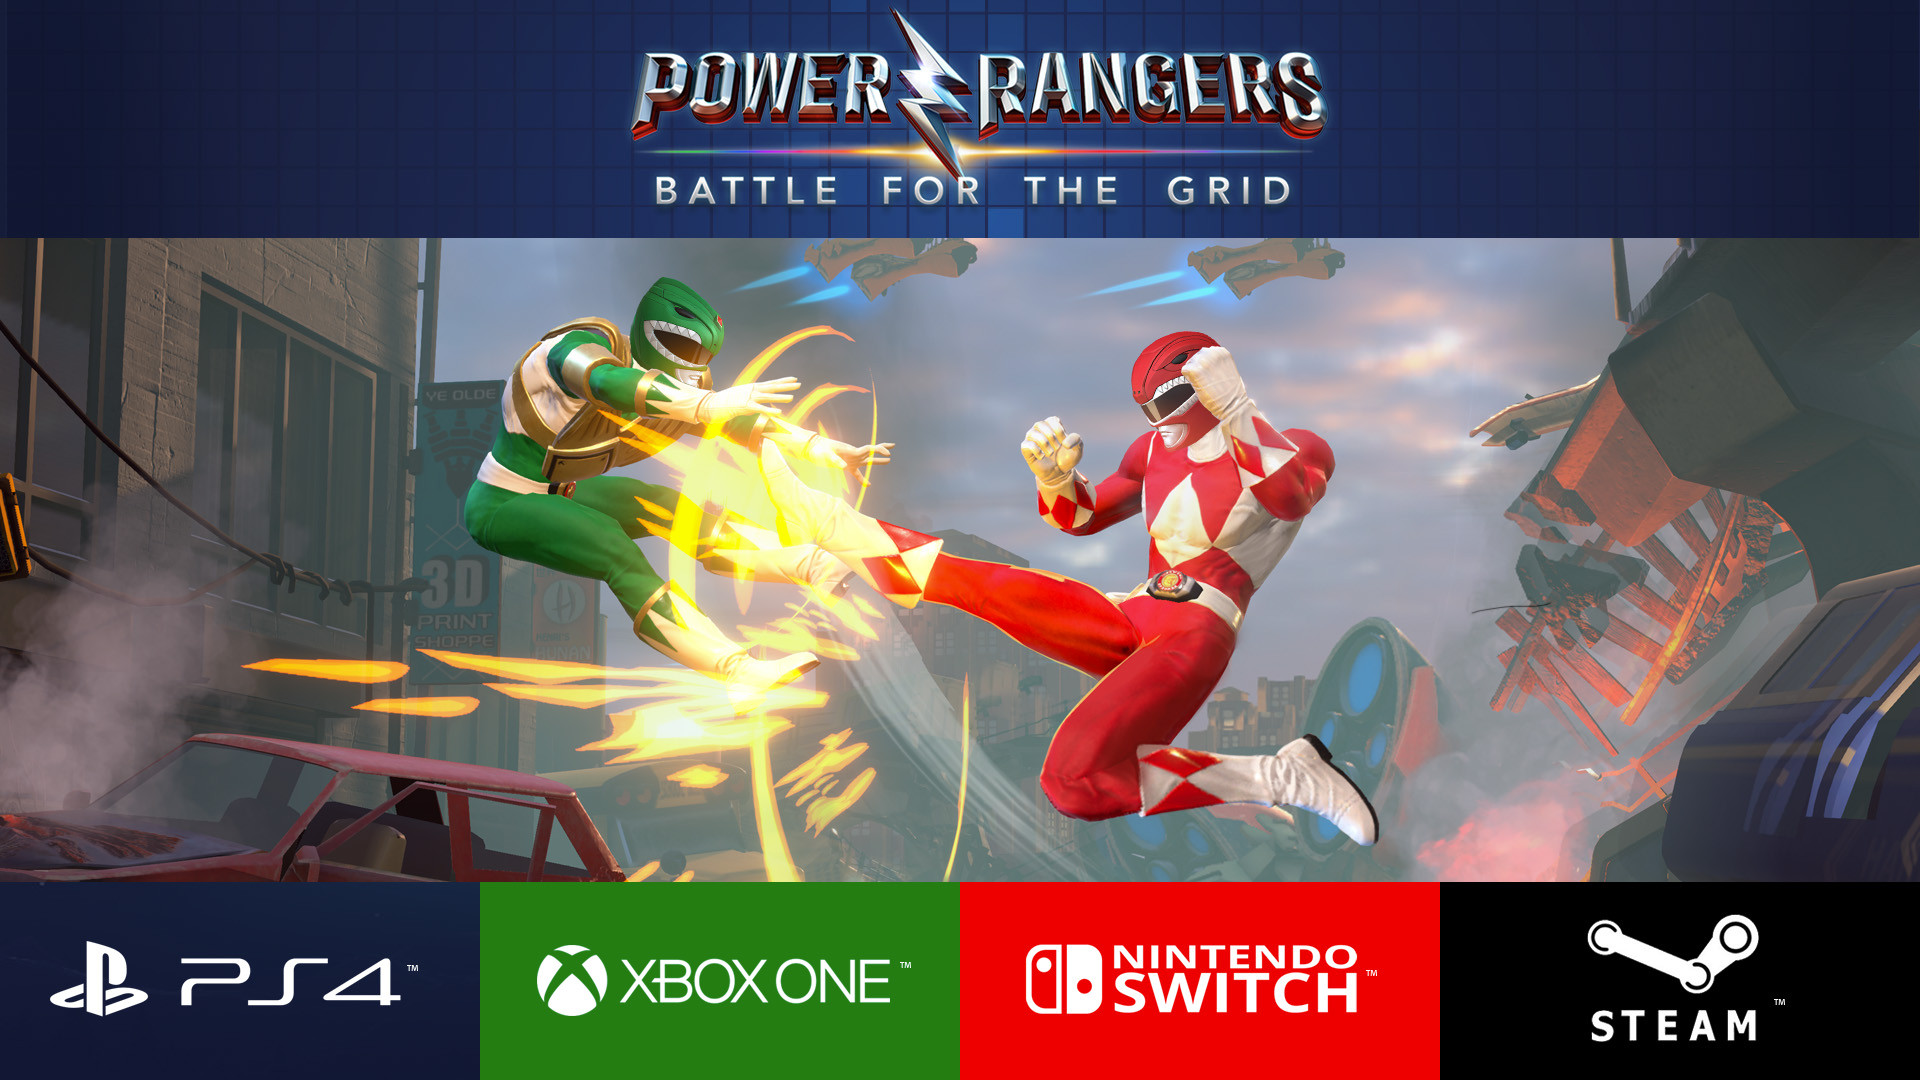 Click image for larger version  Name:	Power Rangers Battle for the Grid Promo Image 2.jpg Views:	1 Size:	444.9 KB ID:	3492569